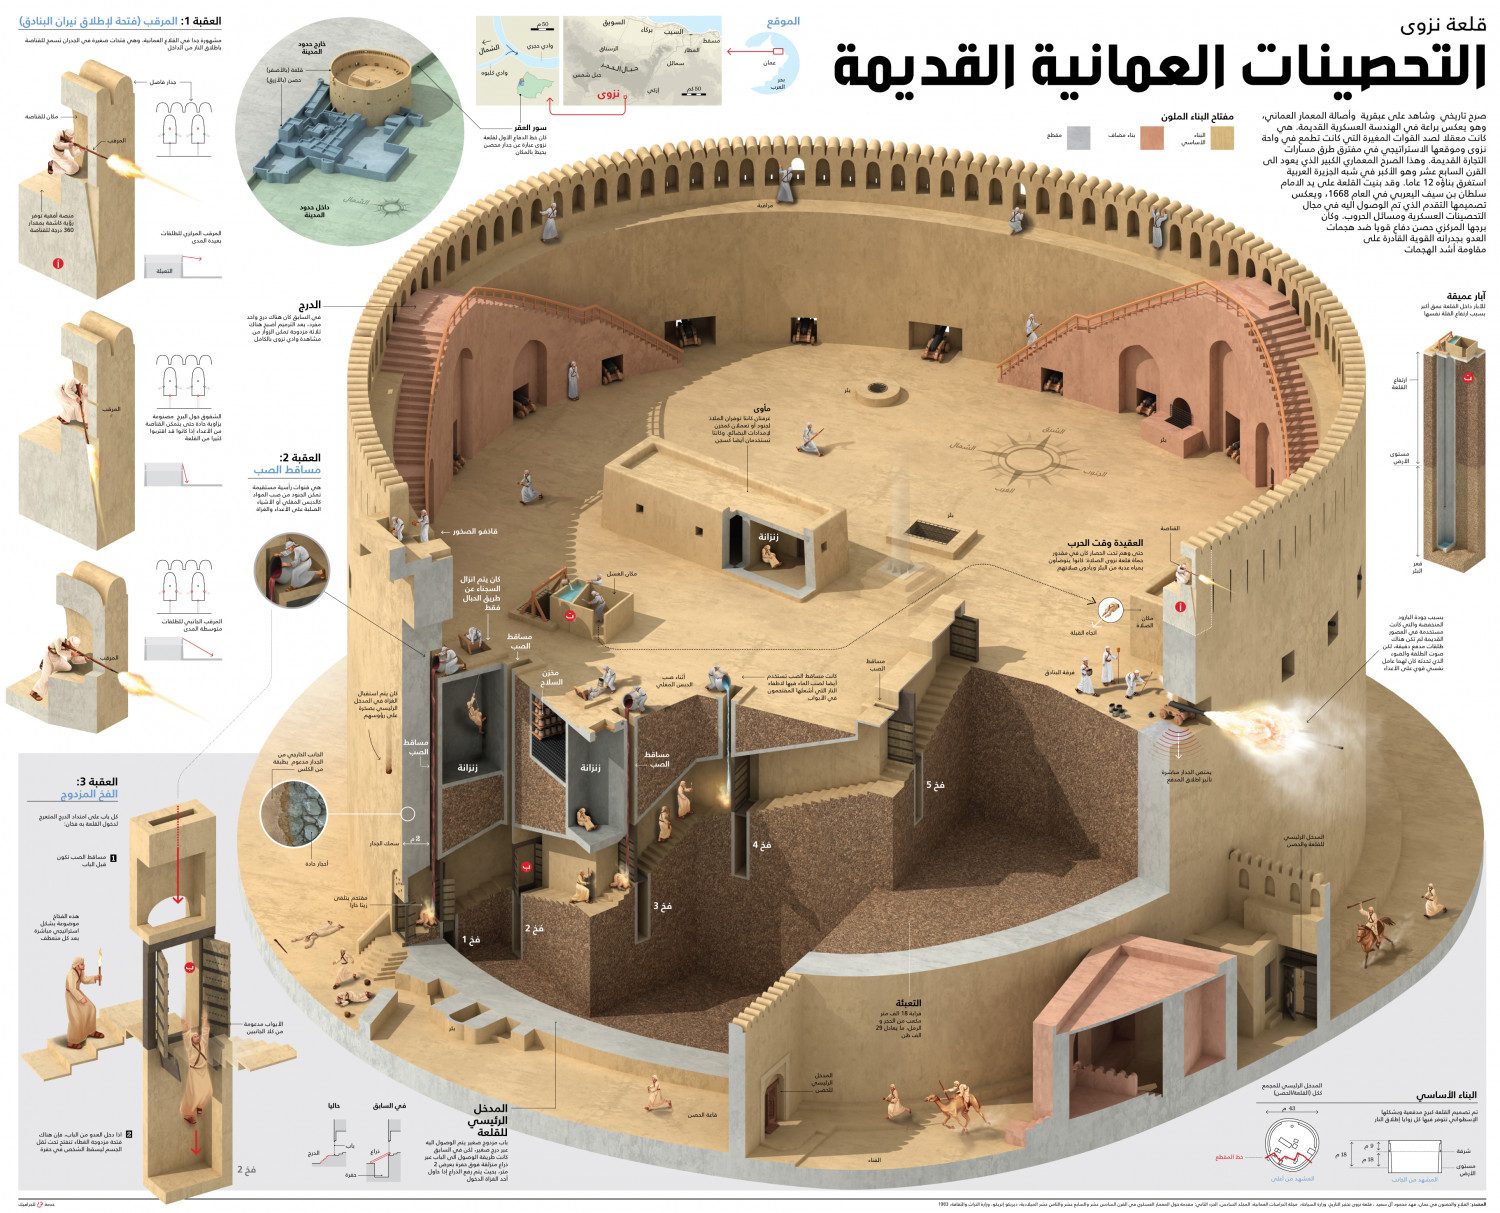 The Great fort of Nizwa Infographic